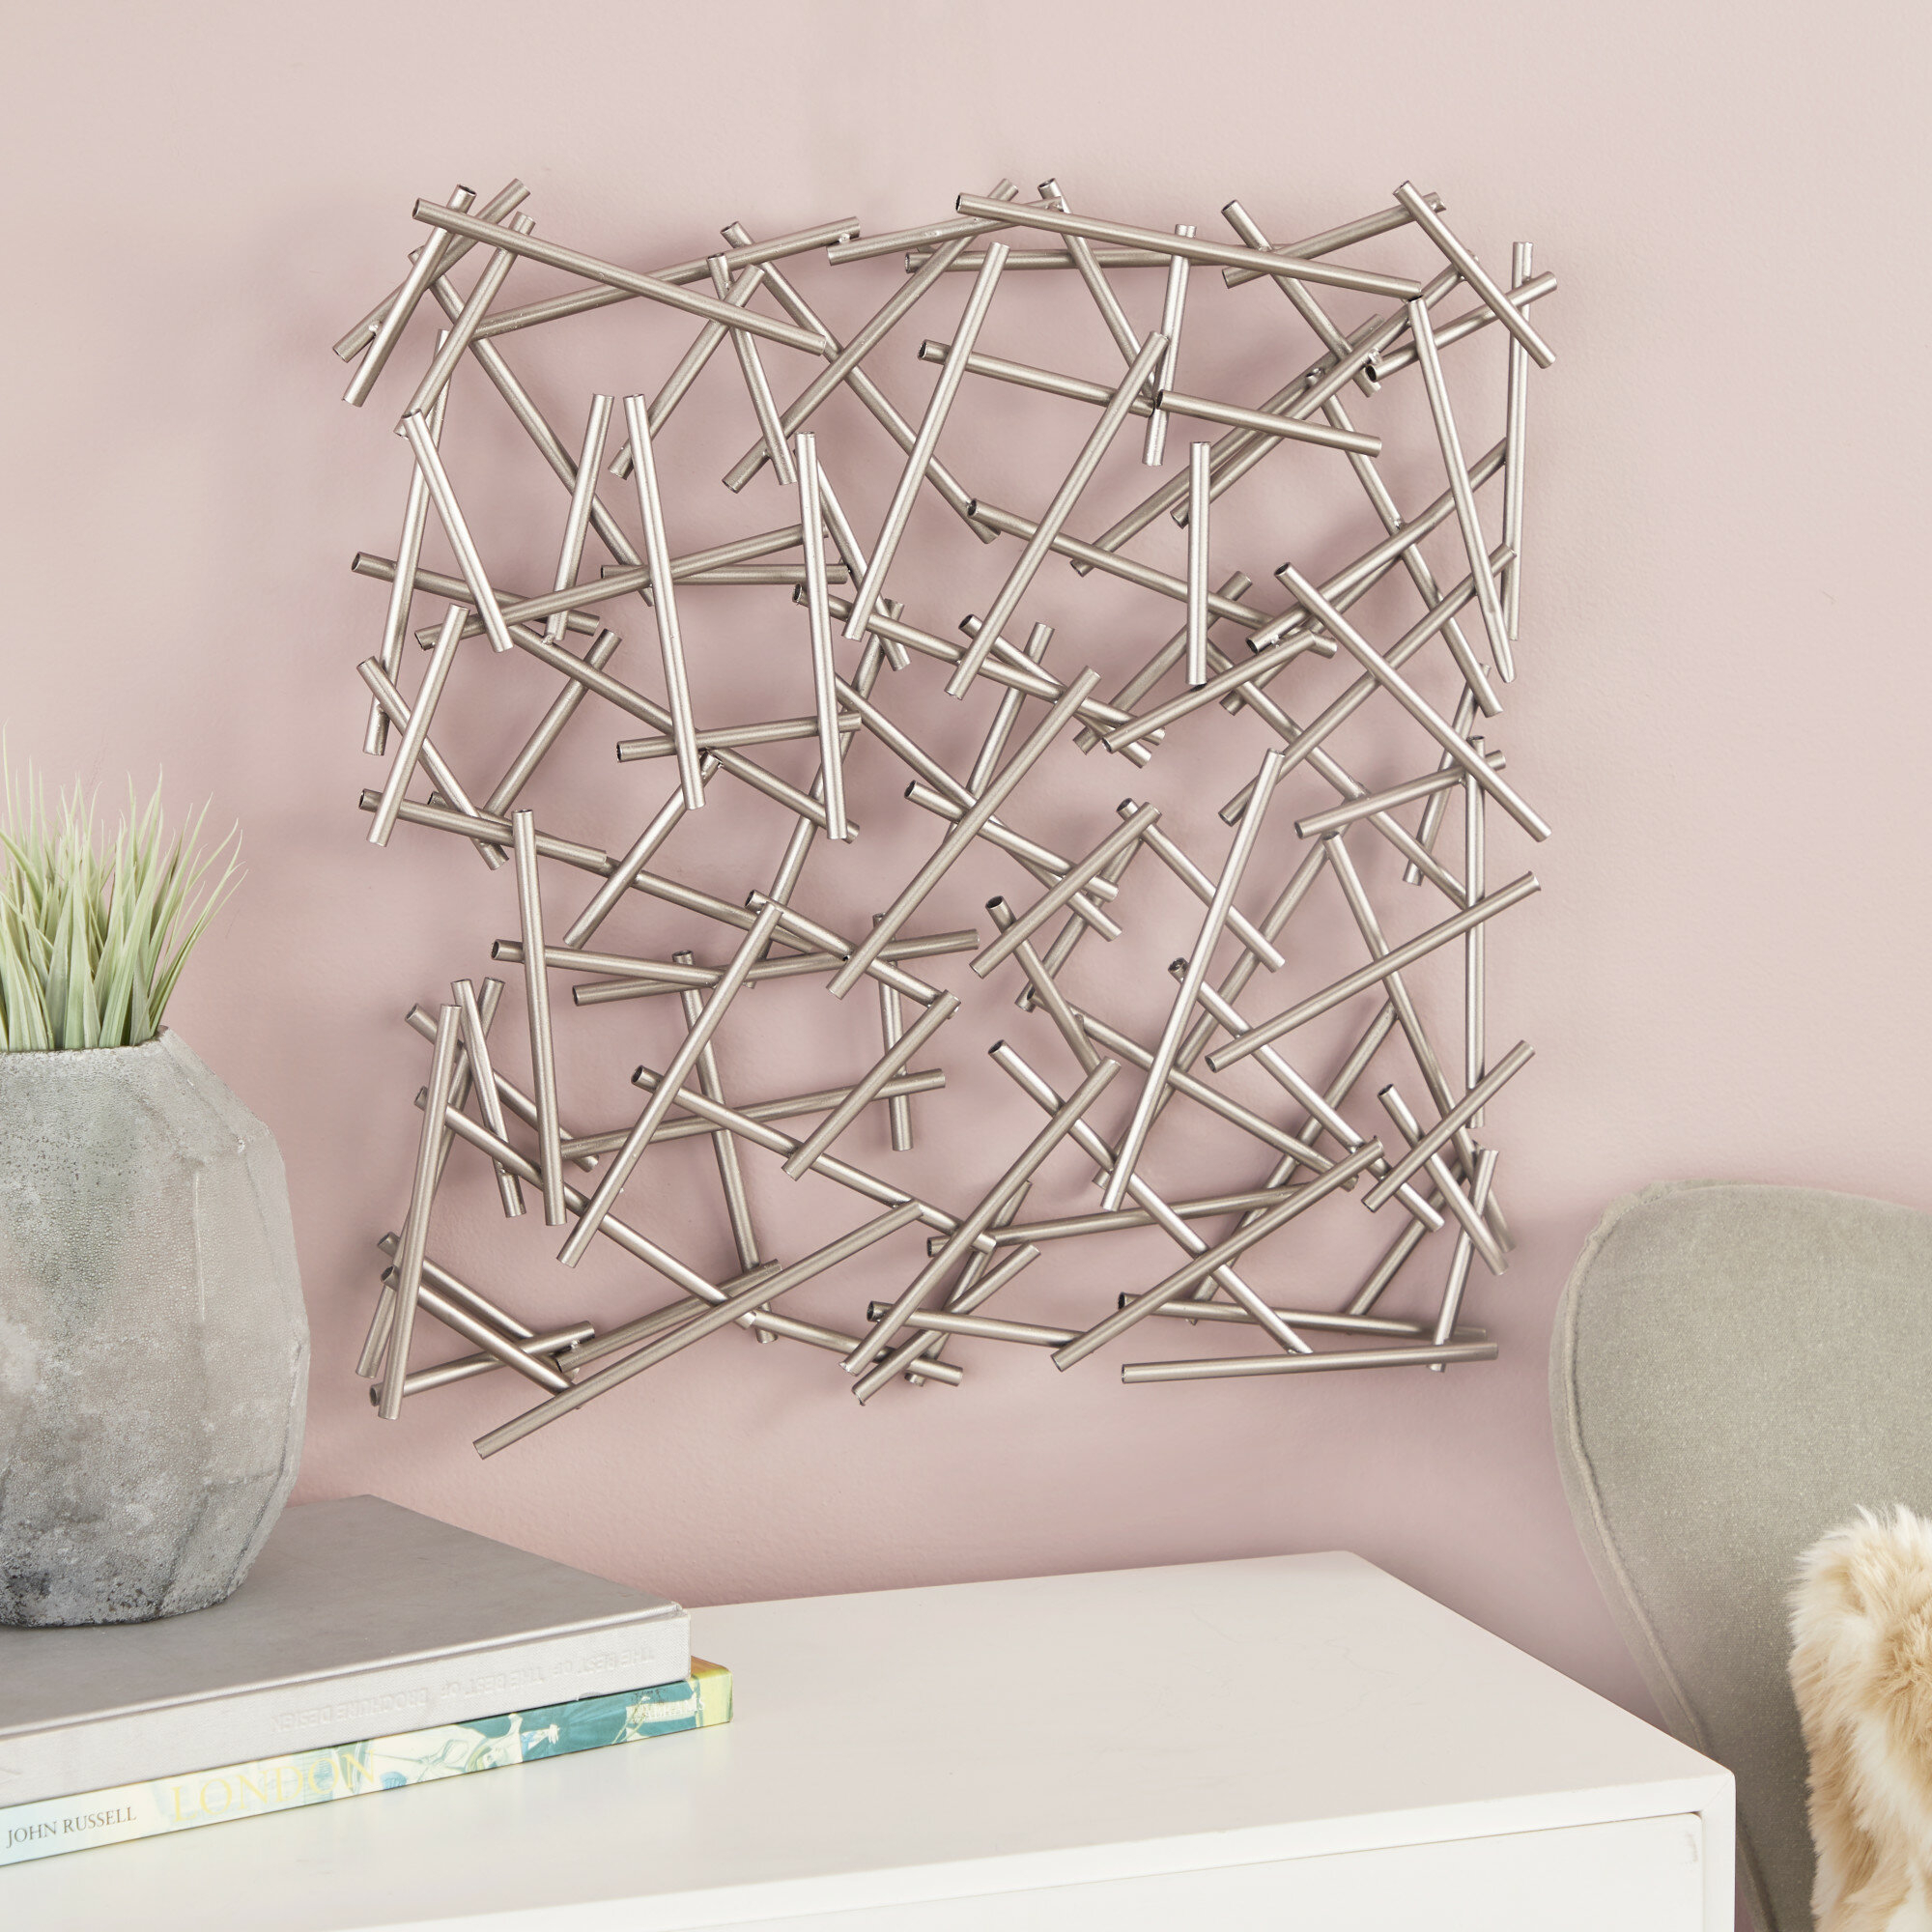 2019 Cosmolivingcosmopolitan Metal Wall Décor & Reviews (View 1 of 20)